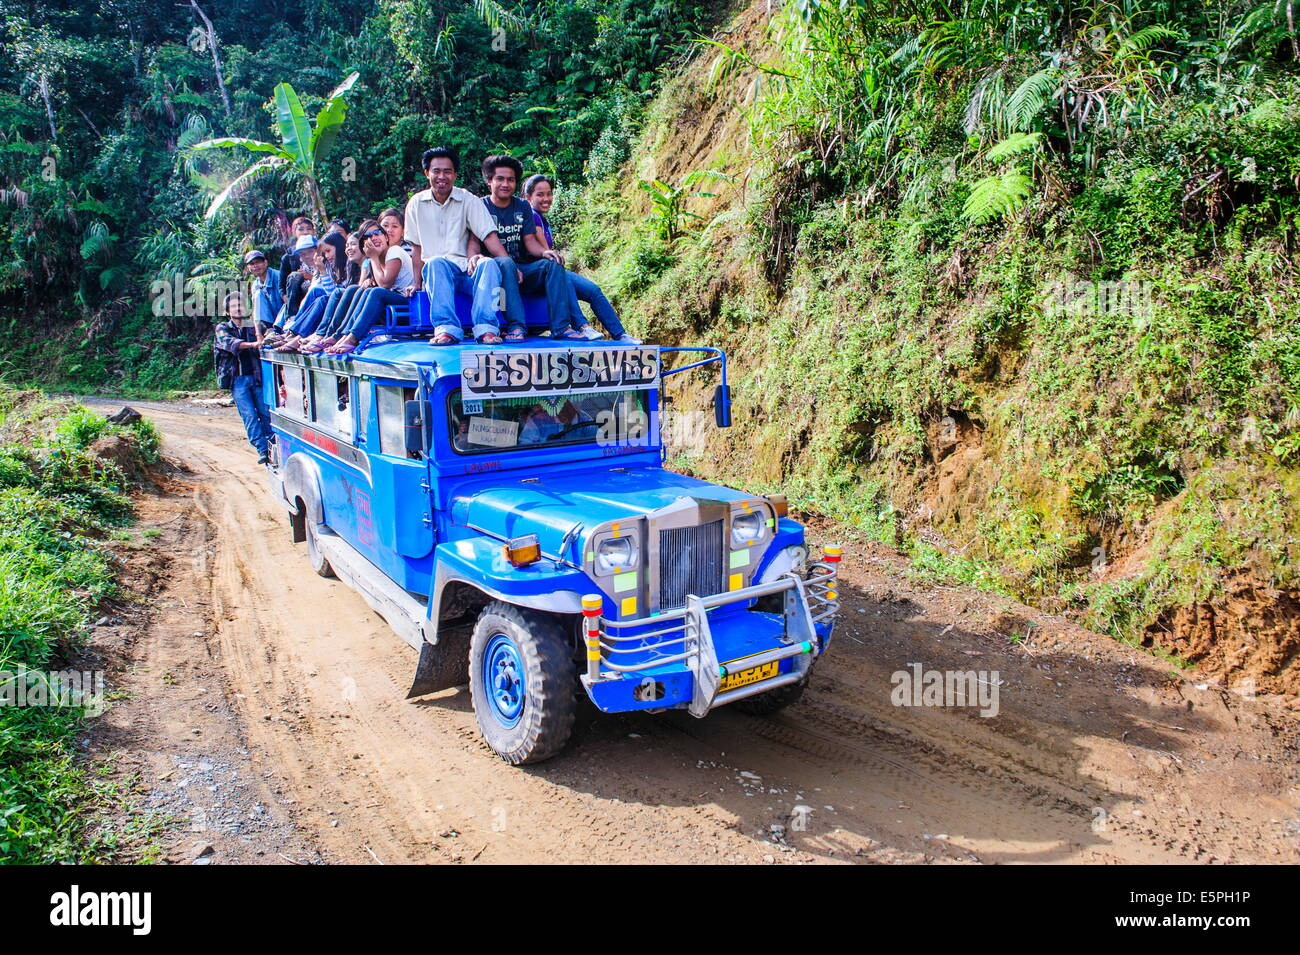 People sitting on a the roof of a jeepney driving through the Hapao rice terraces, Banaue, UNESCO Site, Luzon, Philippines - Stock Image